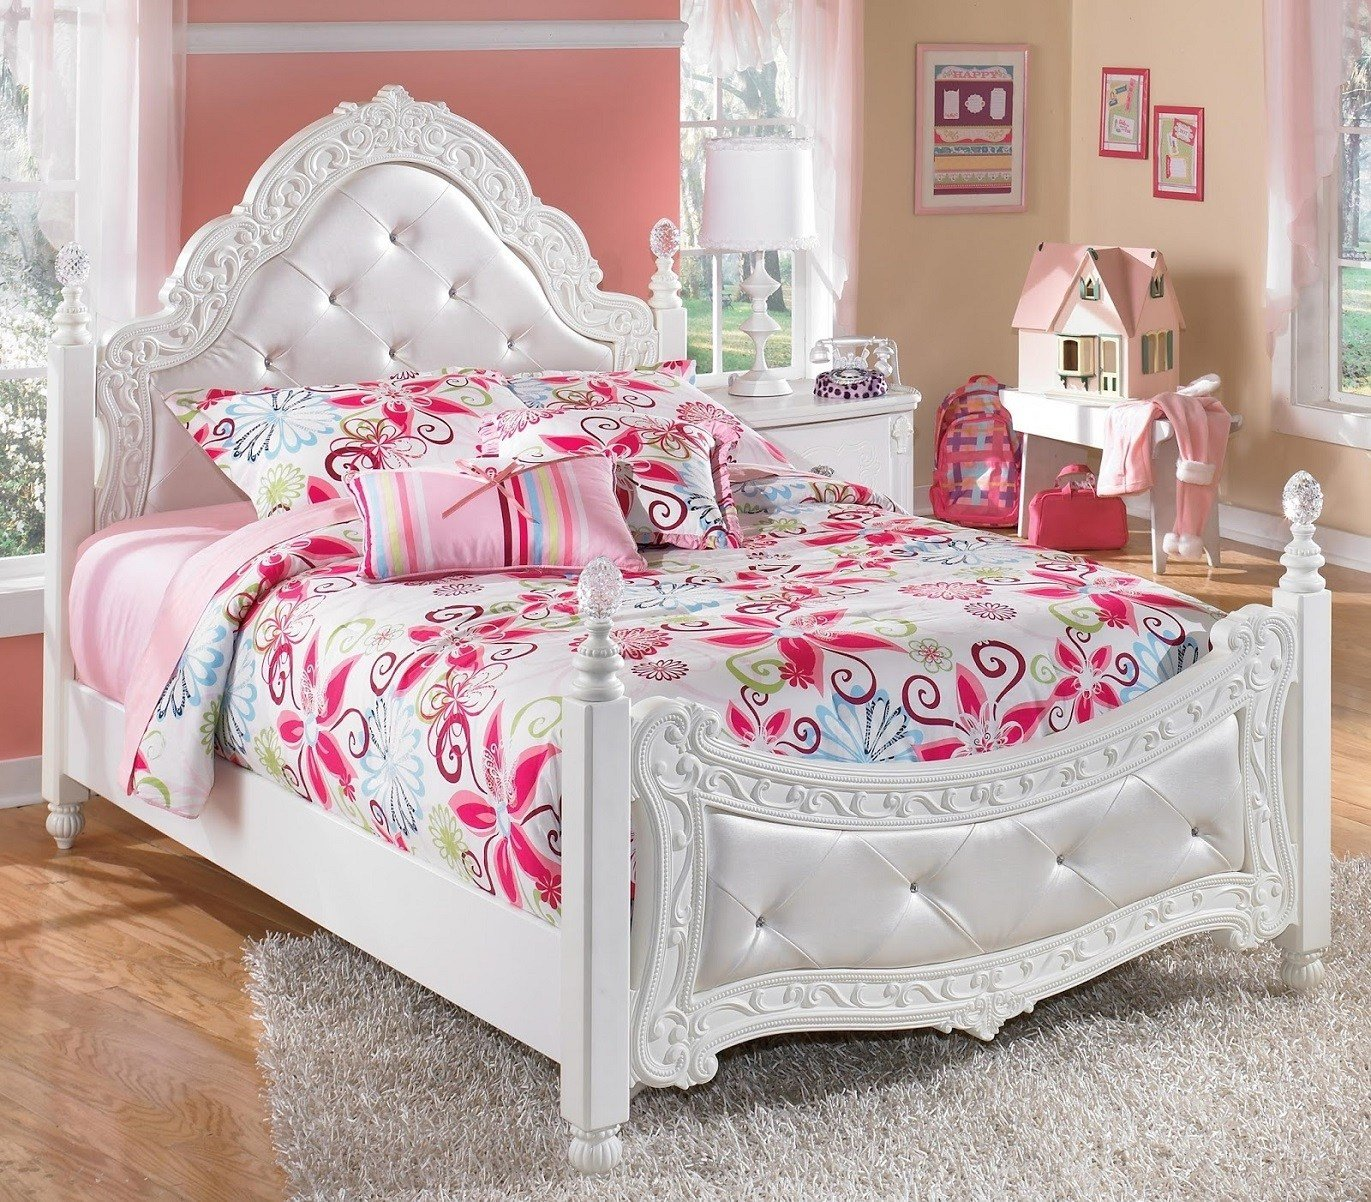 Best Bedroom Ashley White Unique Furniture Bedroom Sets For Teenage Girls With Throughout Girls With Pictures